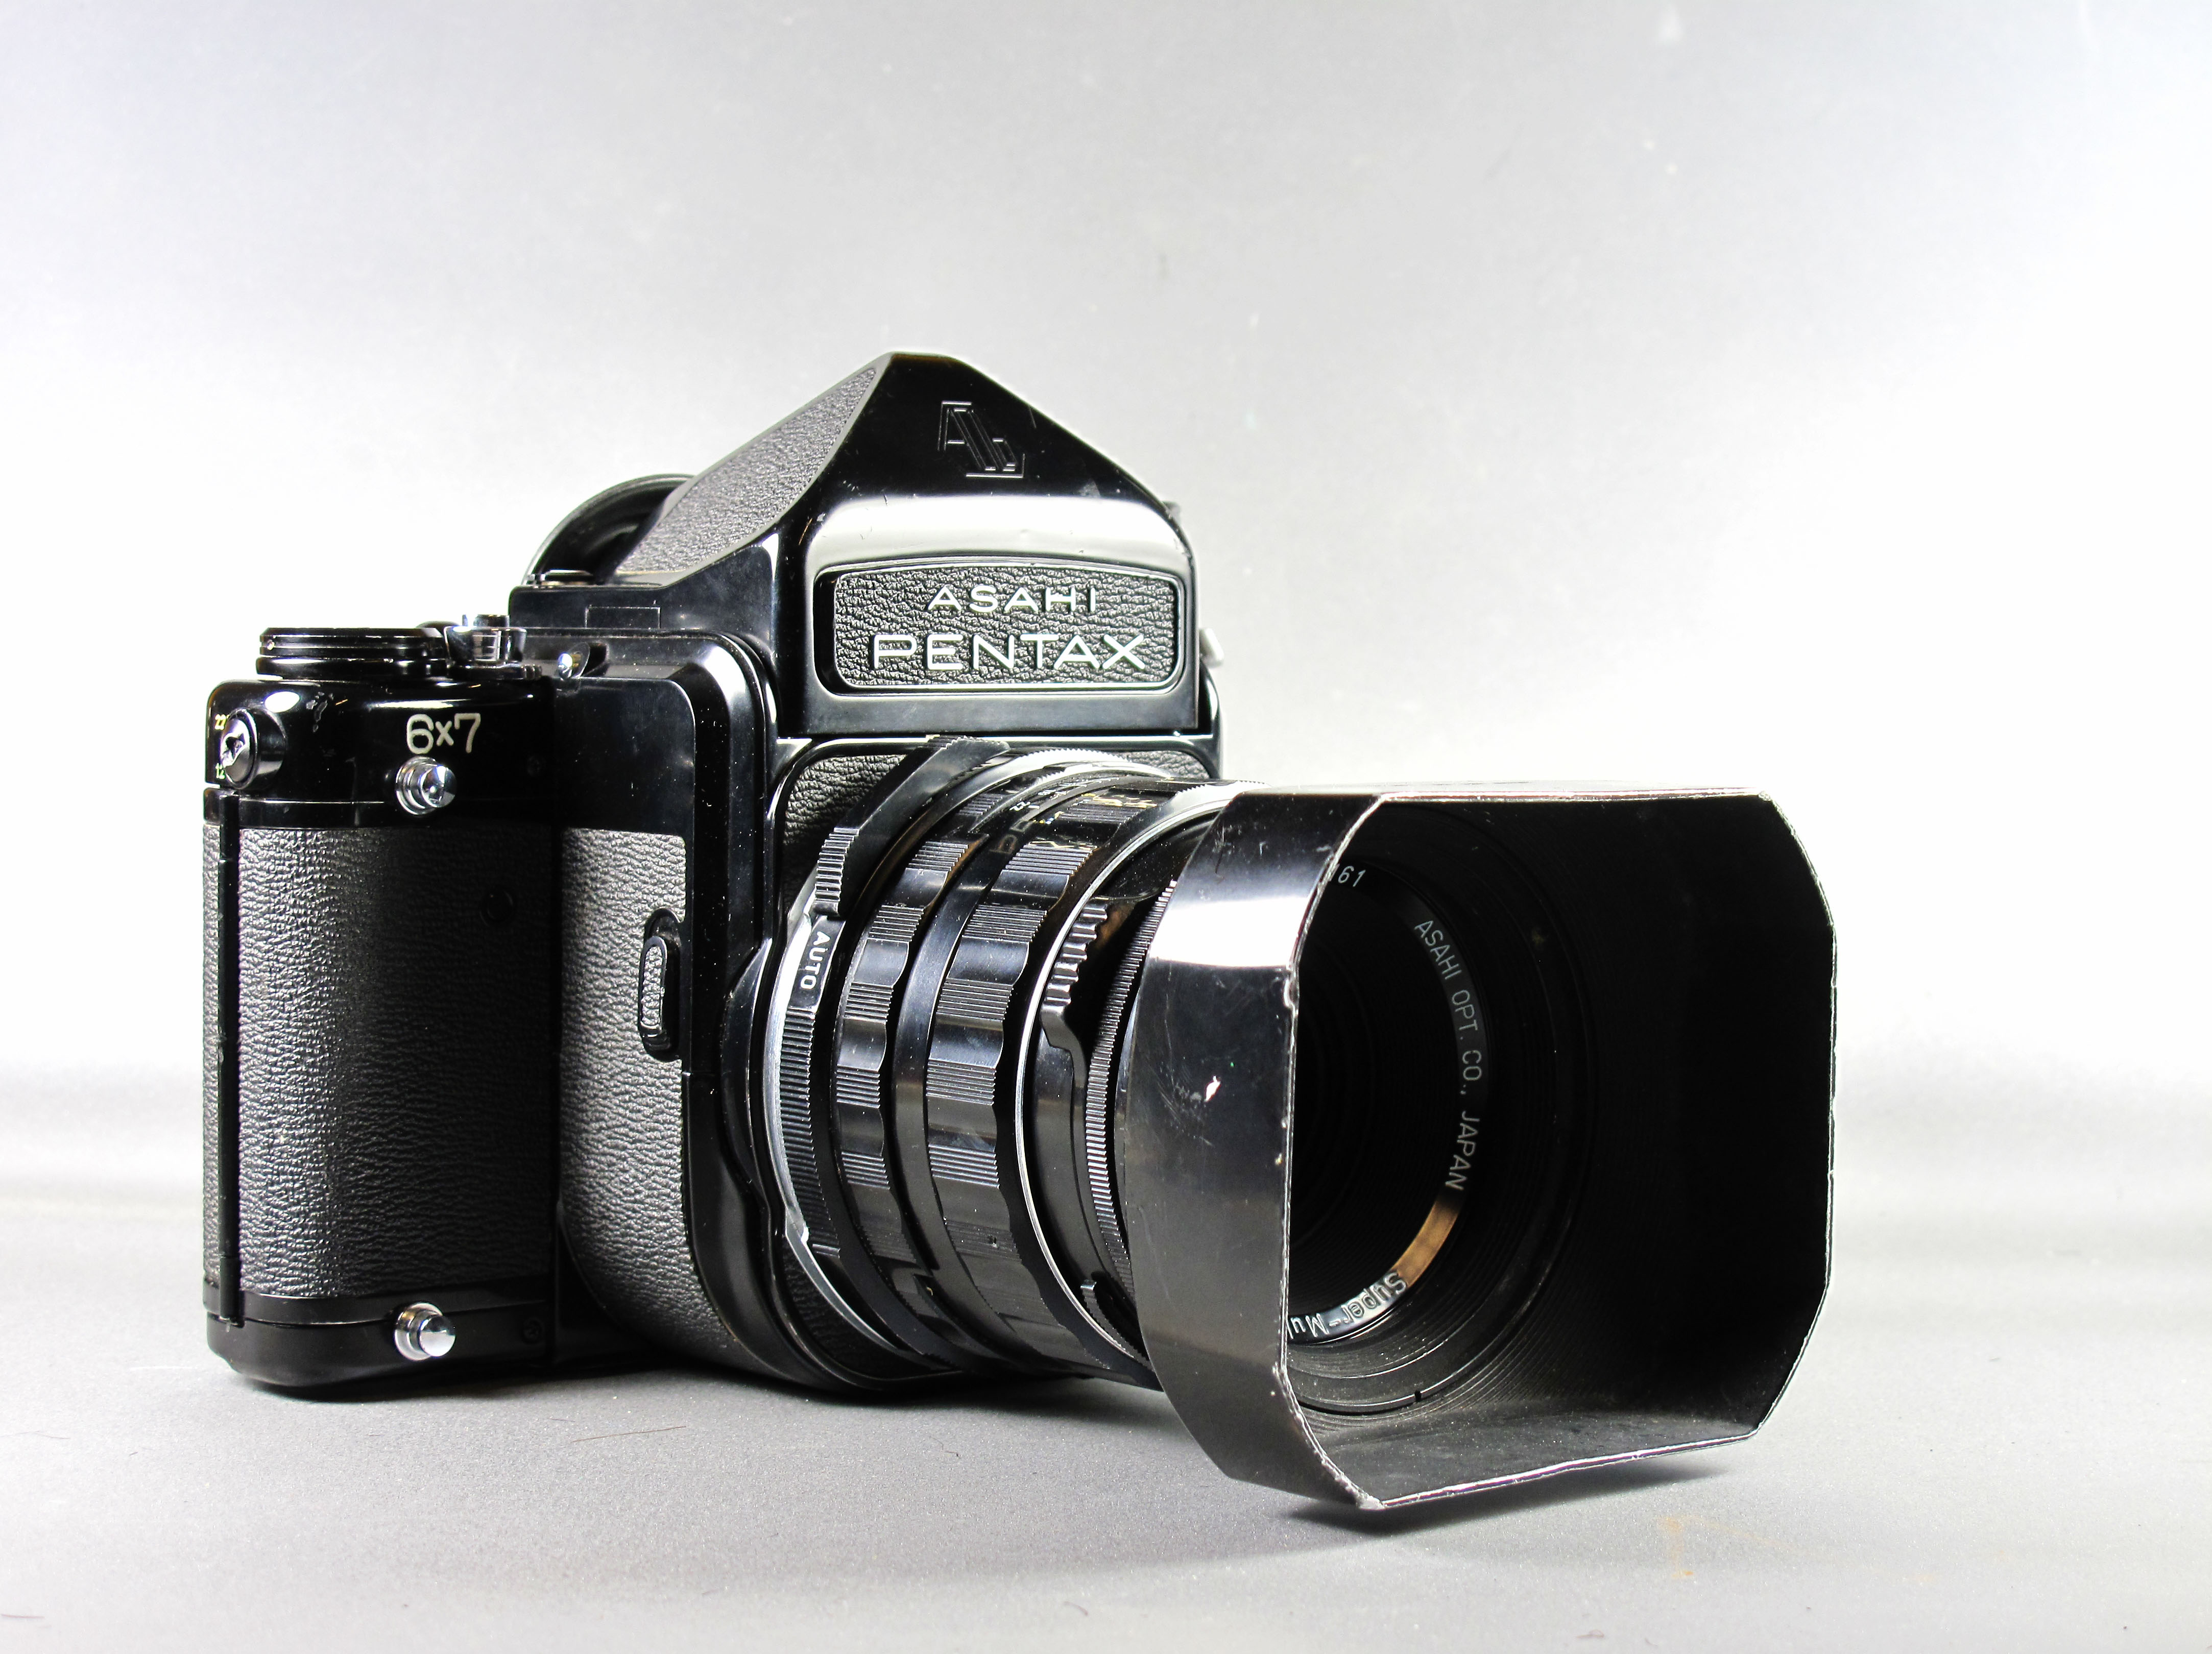 Pentax 67 at CameraTechs - CameraTechs Inc.